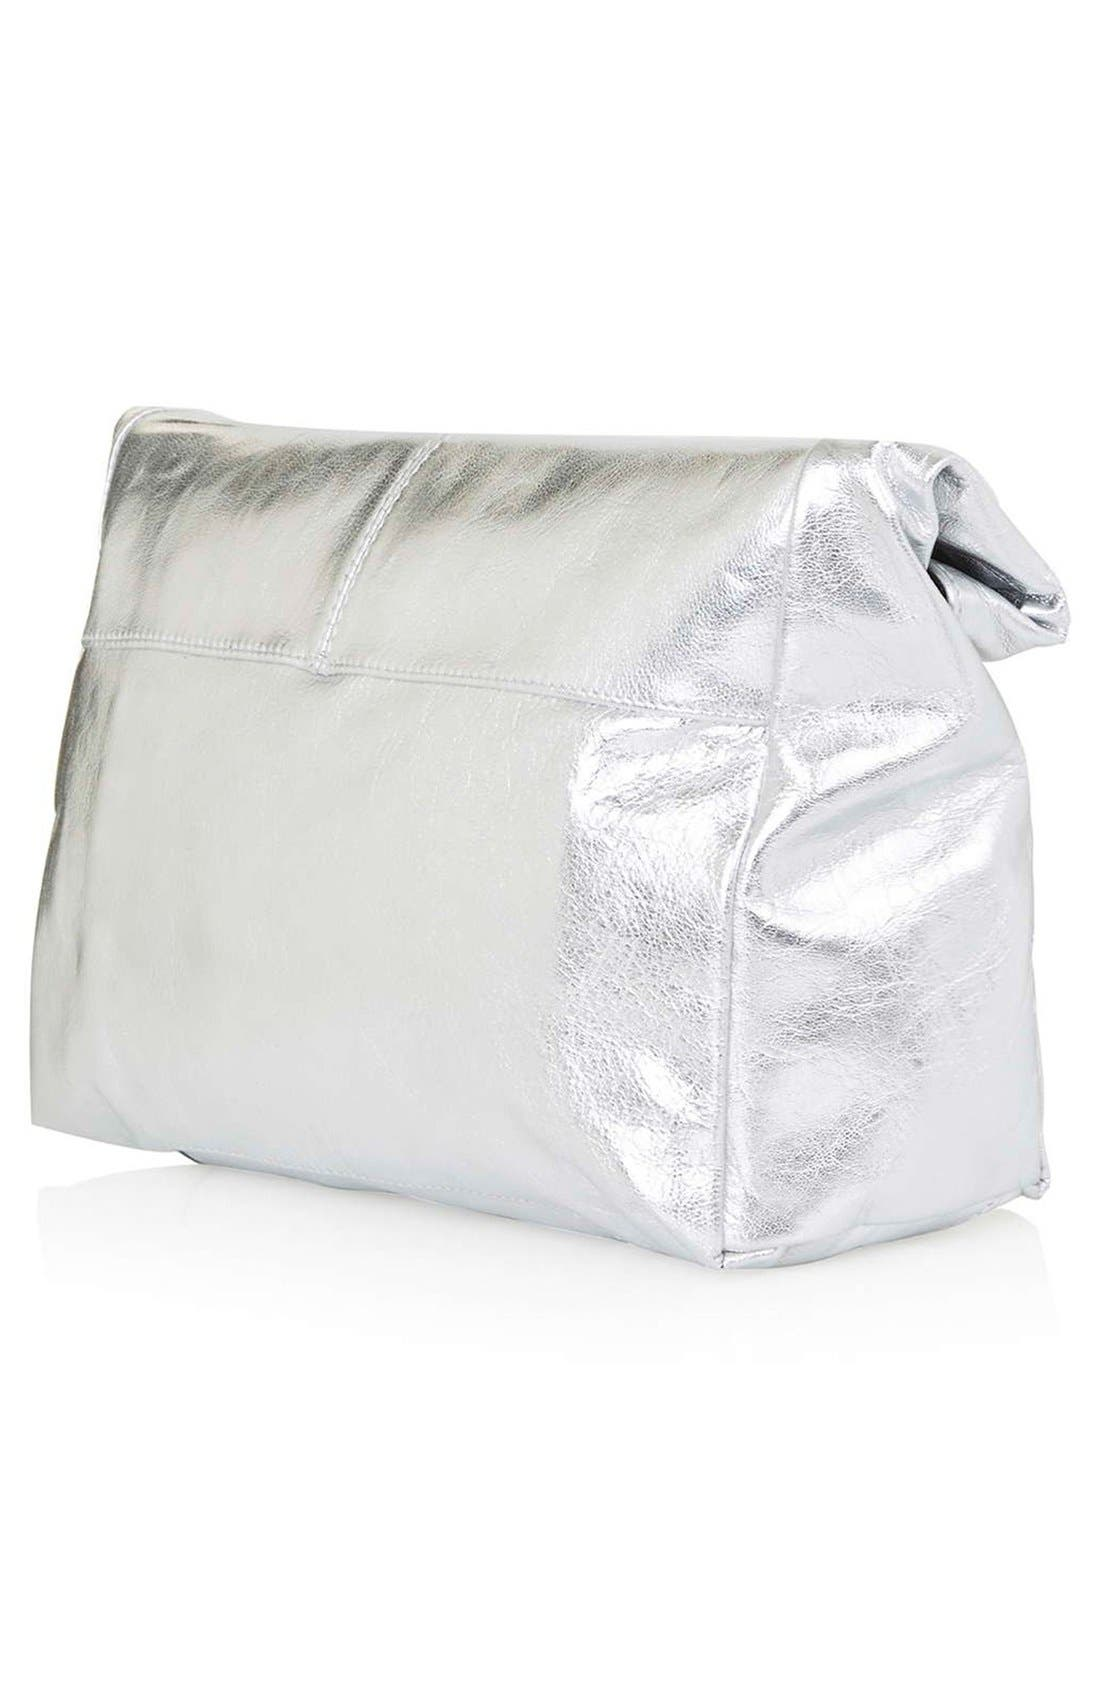 Alternate Image 3  - Topshop Metallic Leather Foldover Clutch